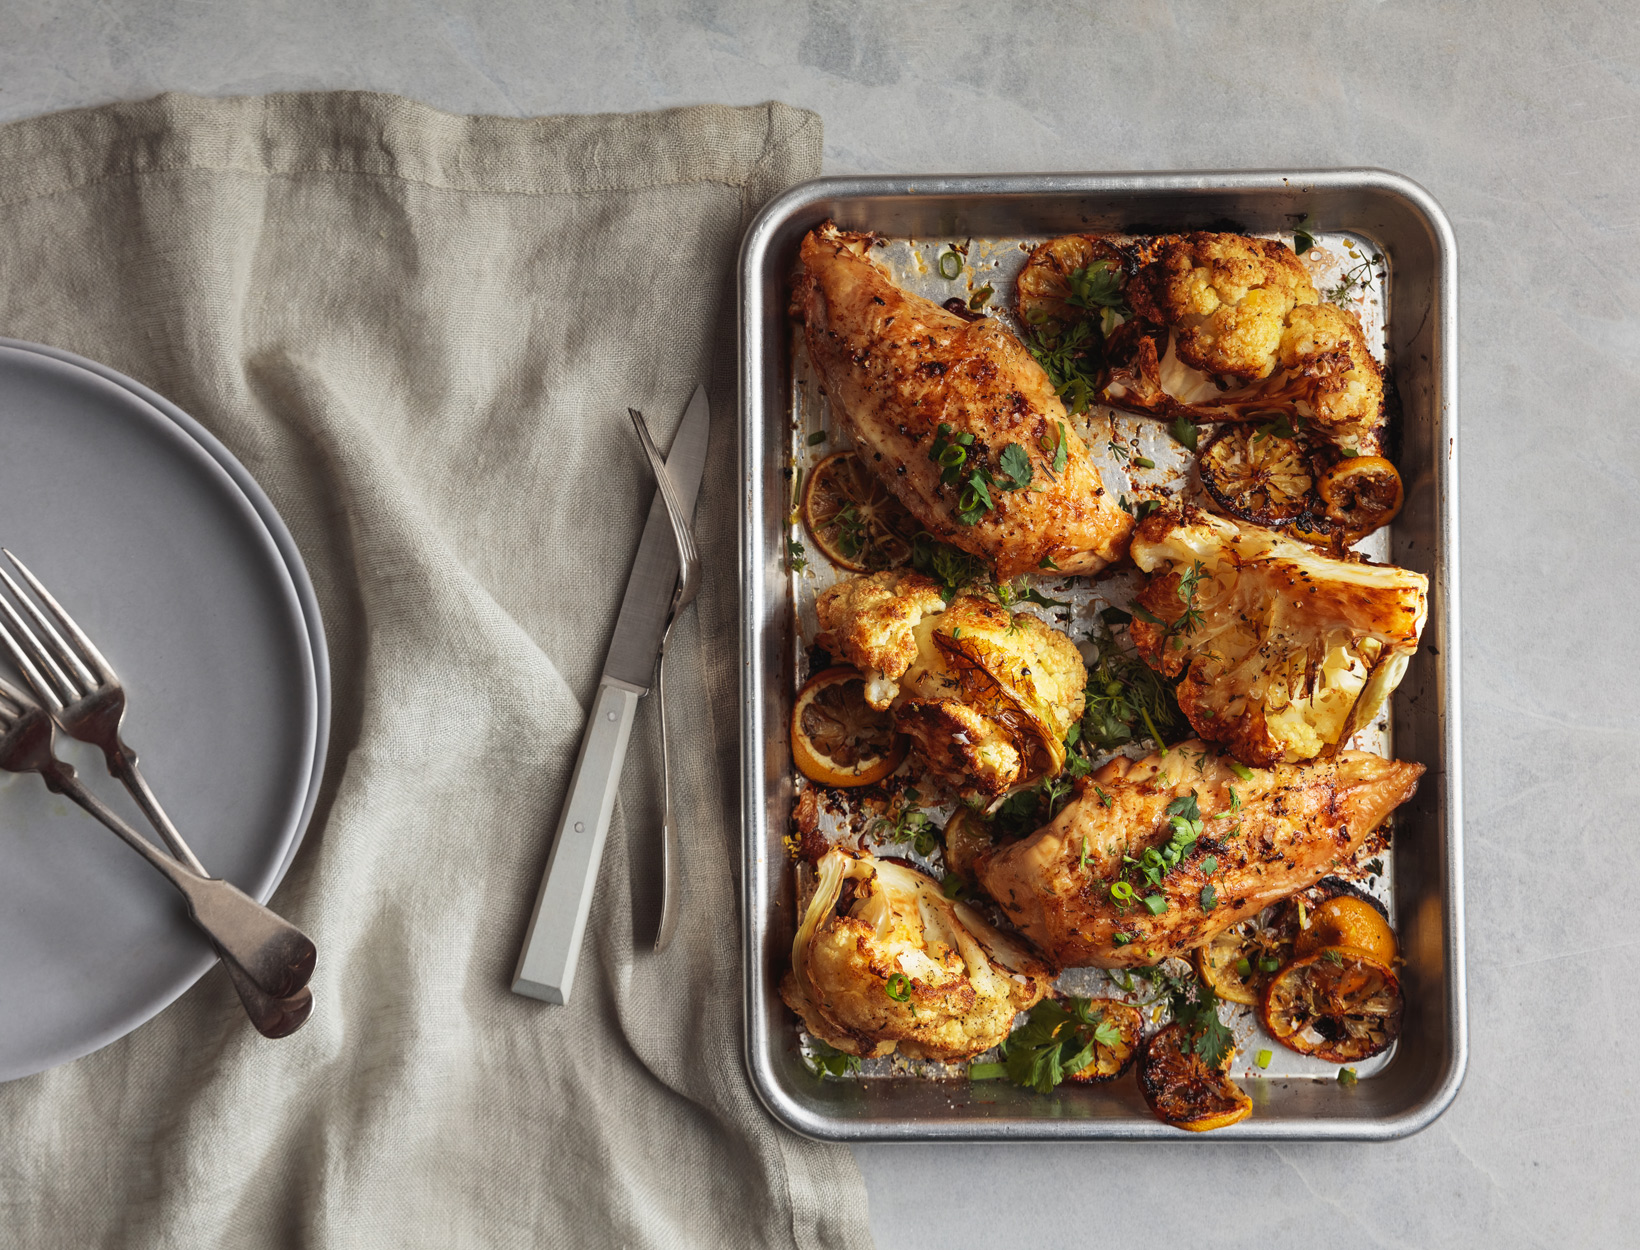 Roasted Chicken and Cauliflower with Herb Salad